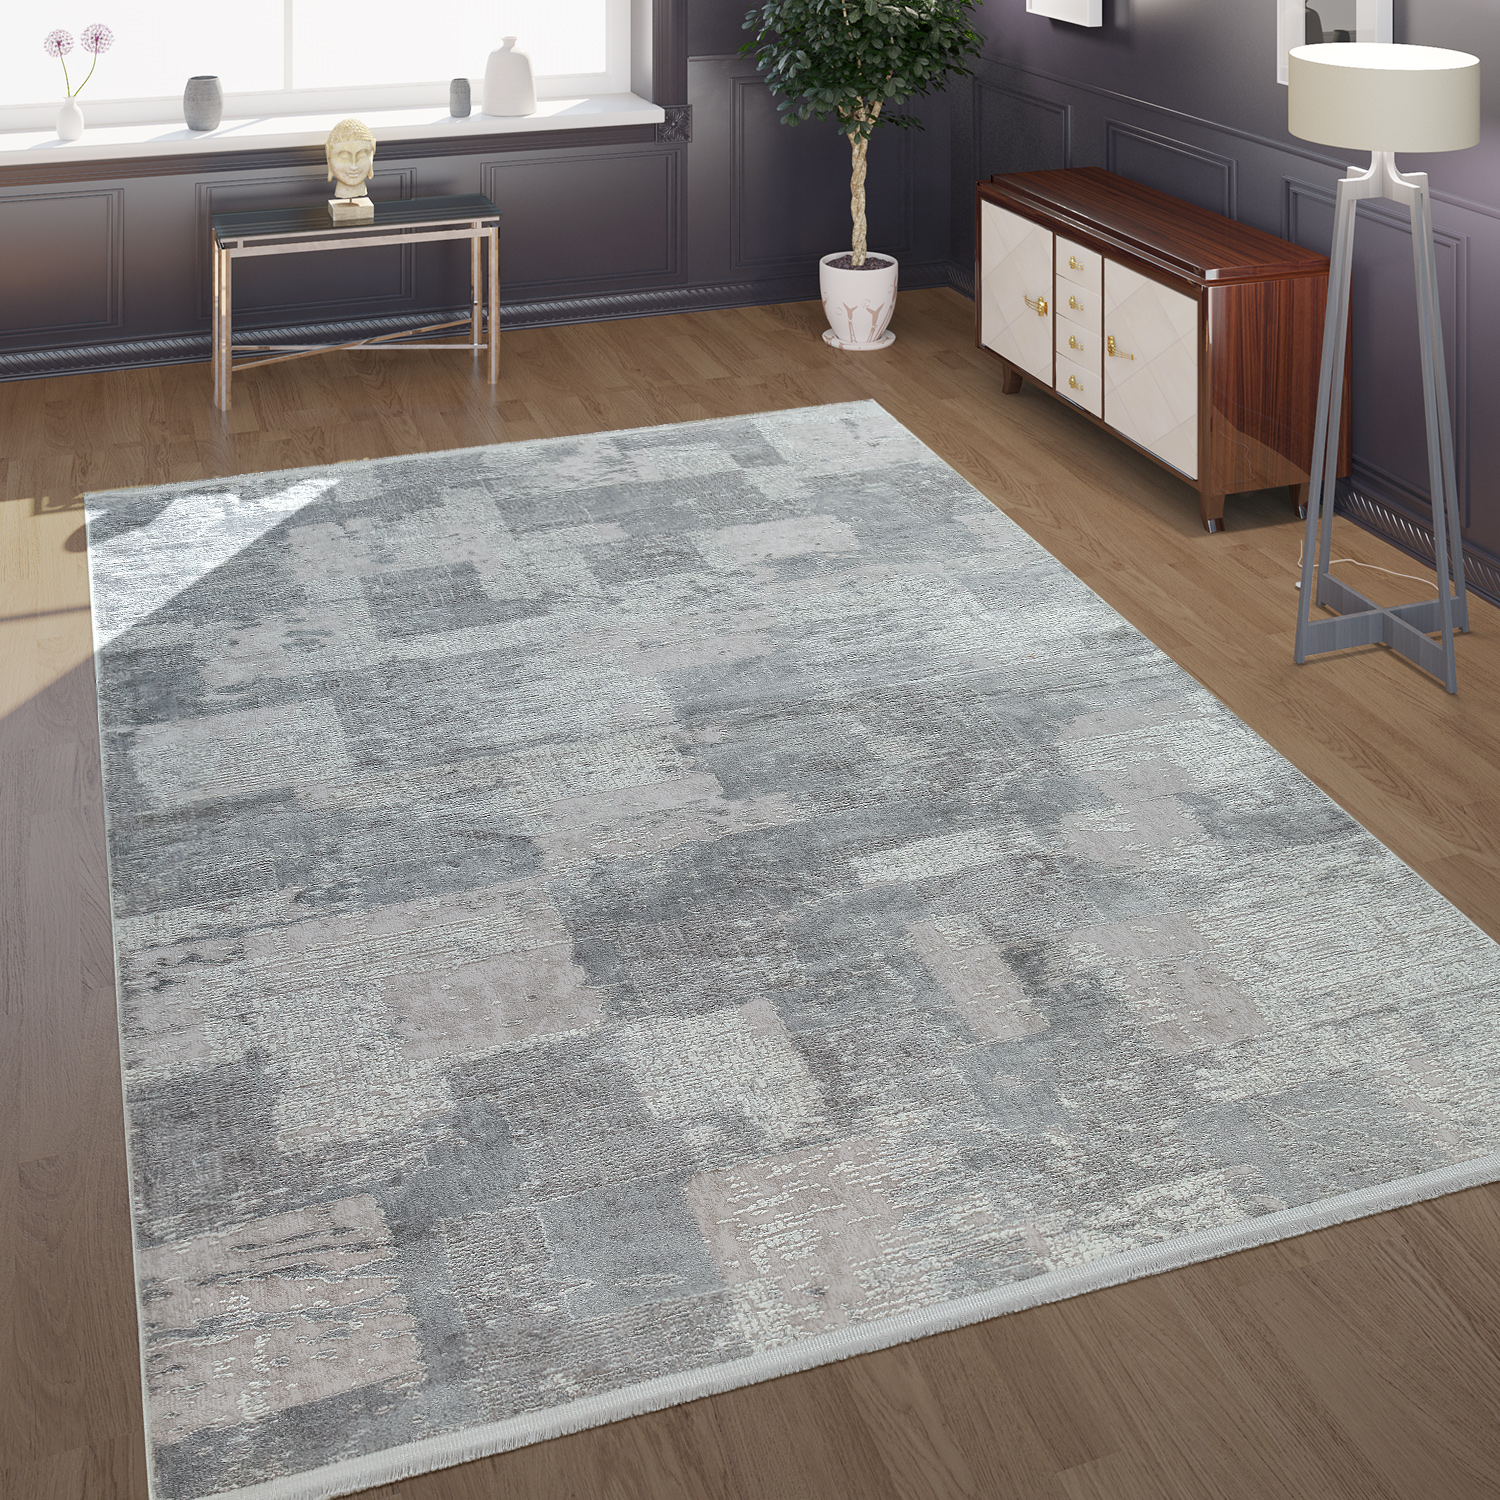 Modern Short-Pile Living Room Rug In The Antique Check Pattern In Grey